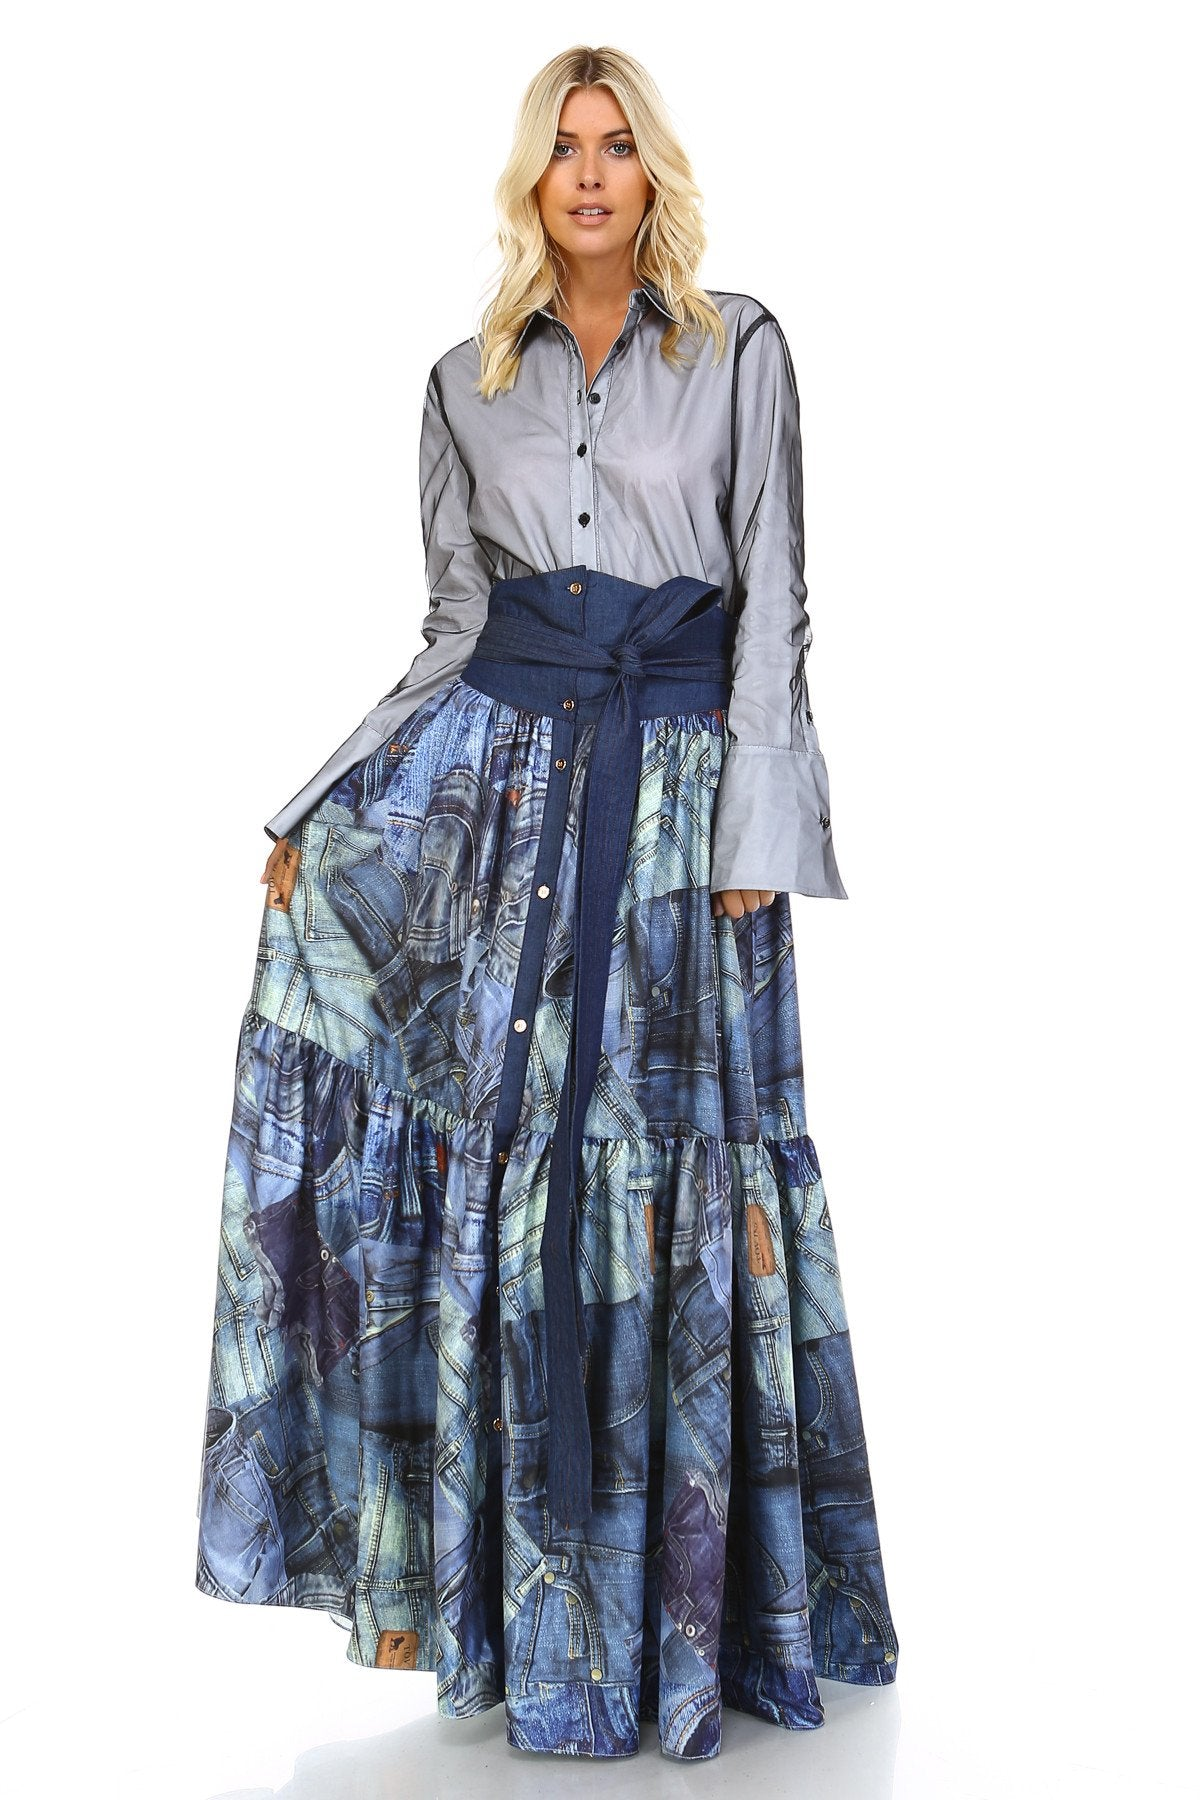 Denim Jeans Collage Print Maxi Skirt - GoGetGlam Boho Style